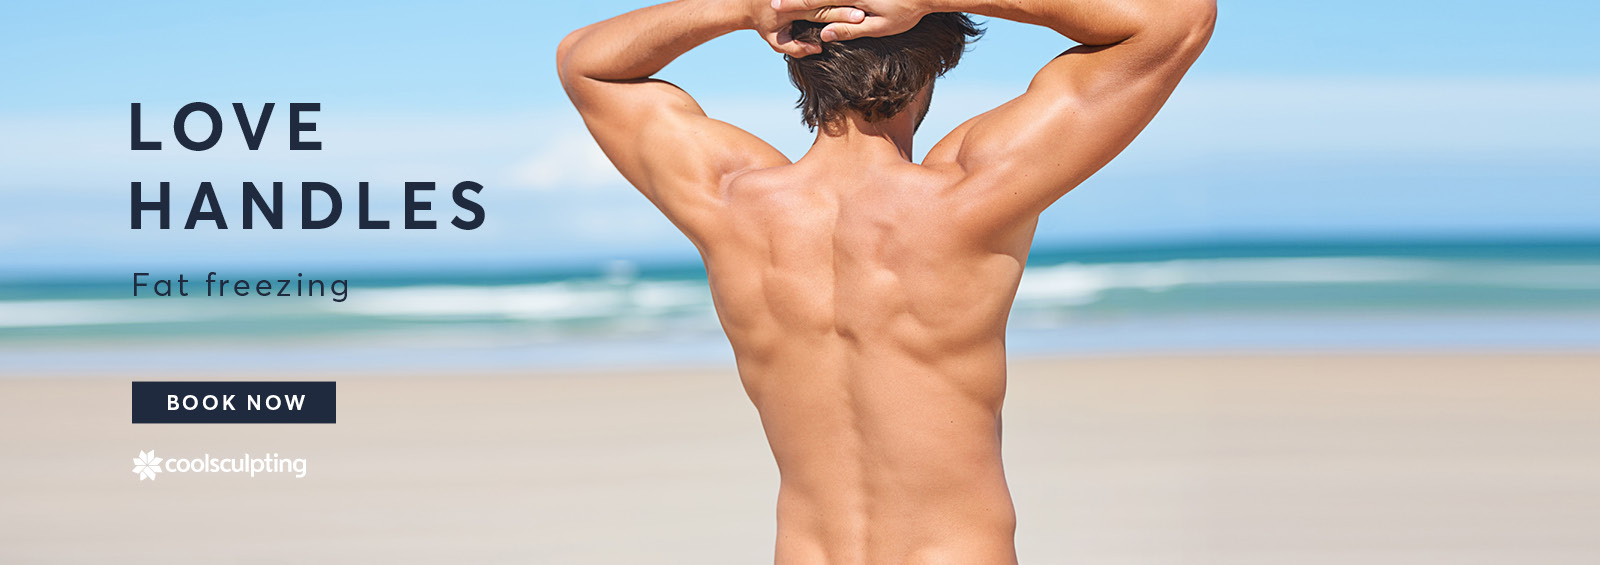 A banner image of a Male on the beach showing his love handles for CoolSculpting treatment